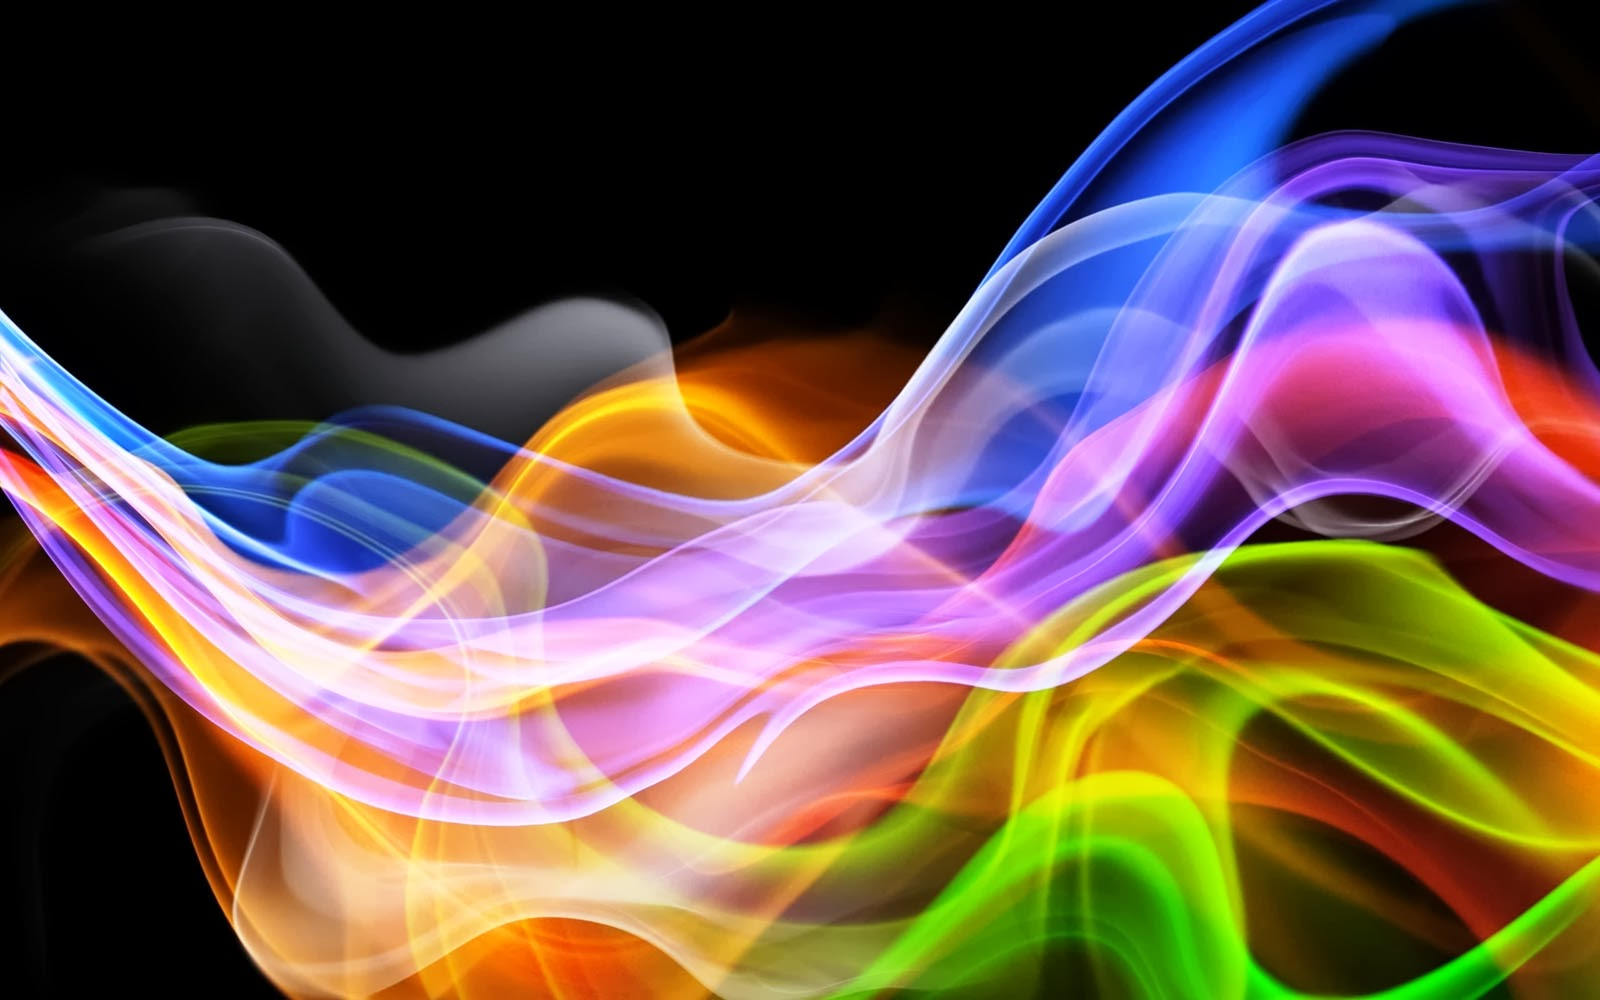 abstract rainbow background wallpaper black - photo #46